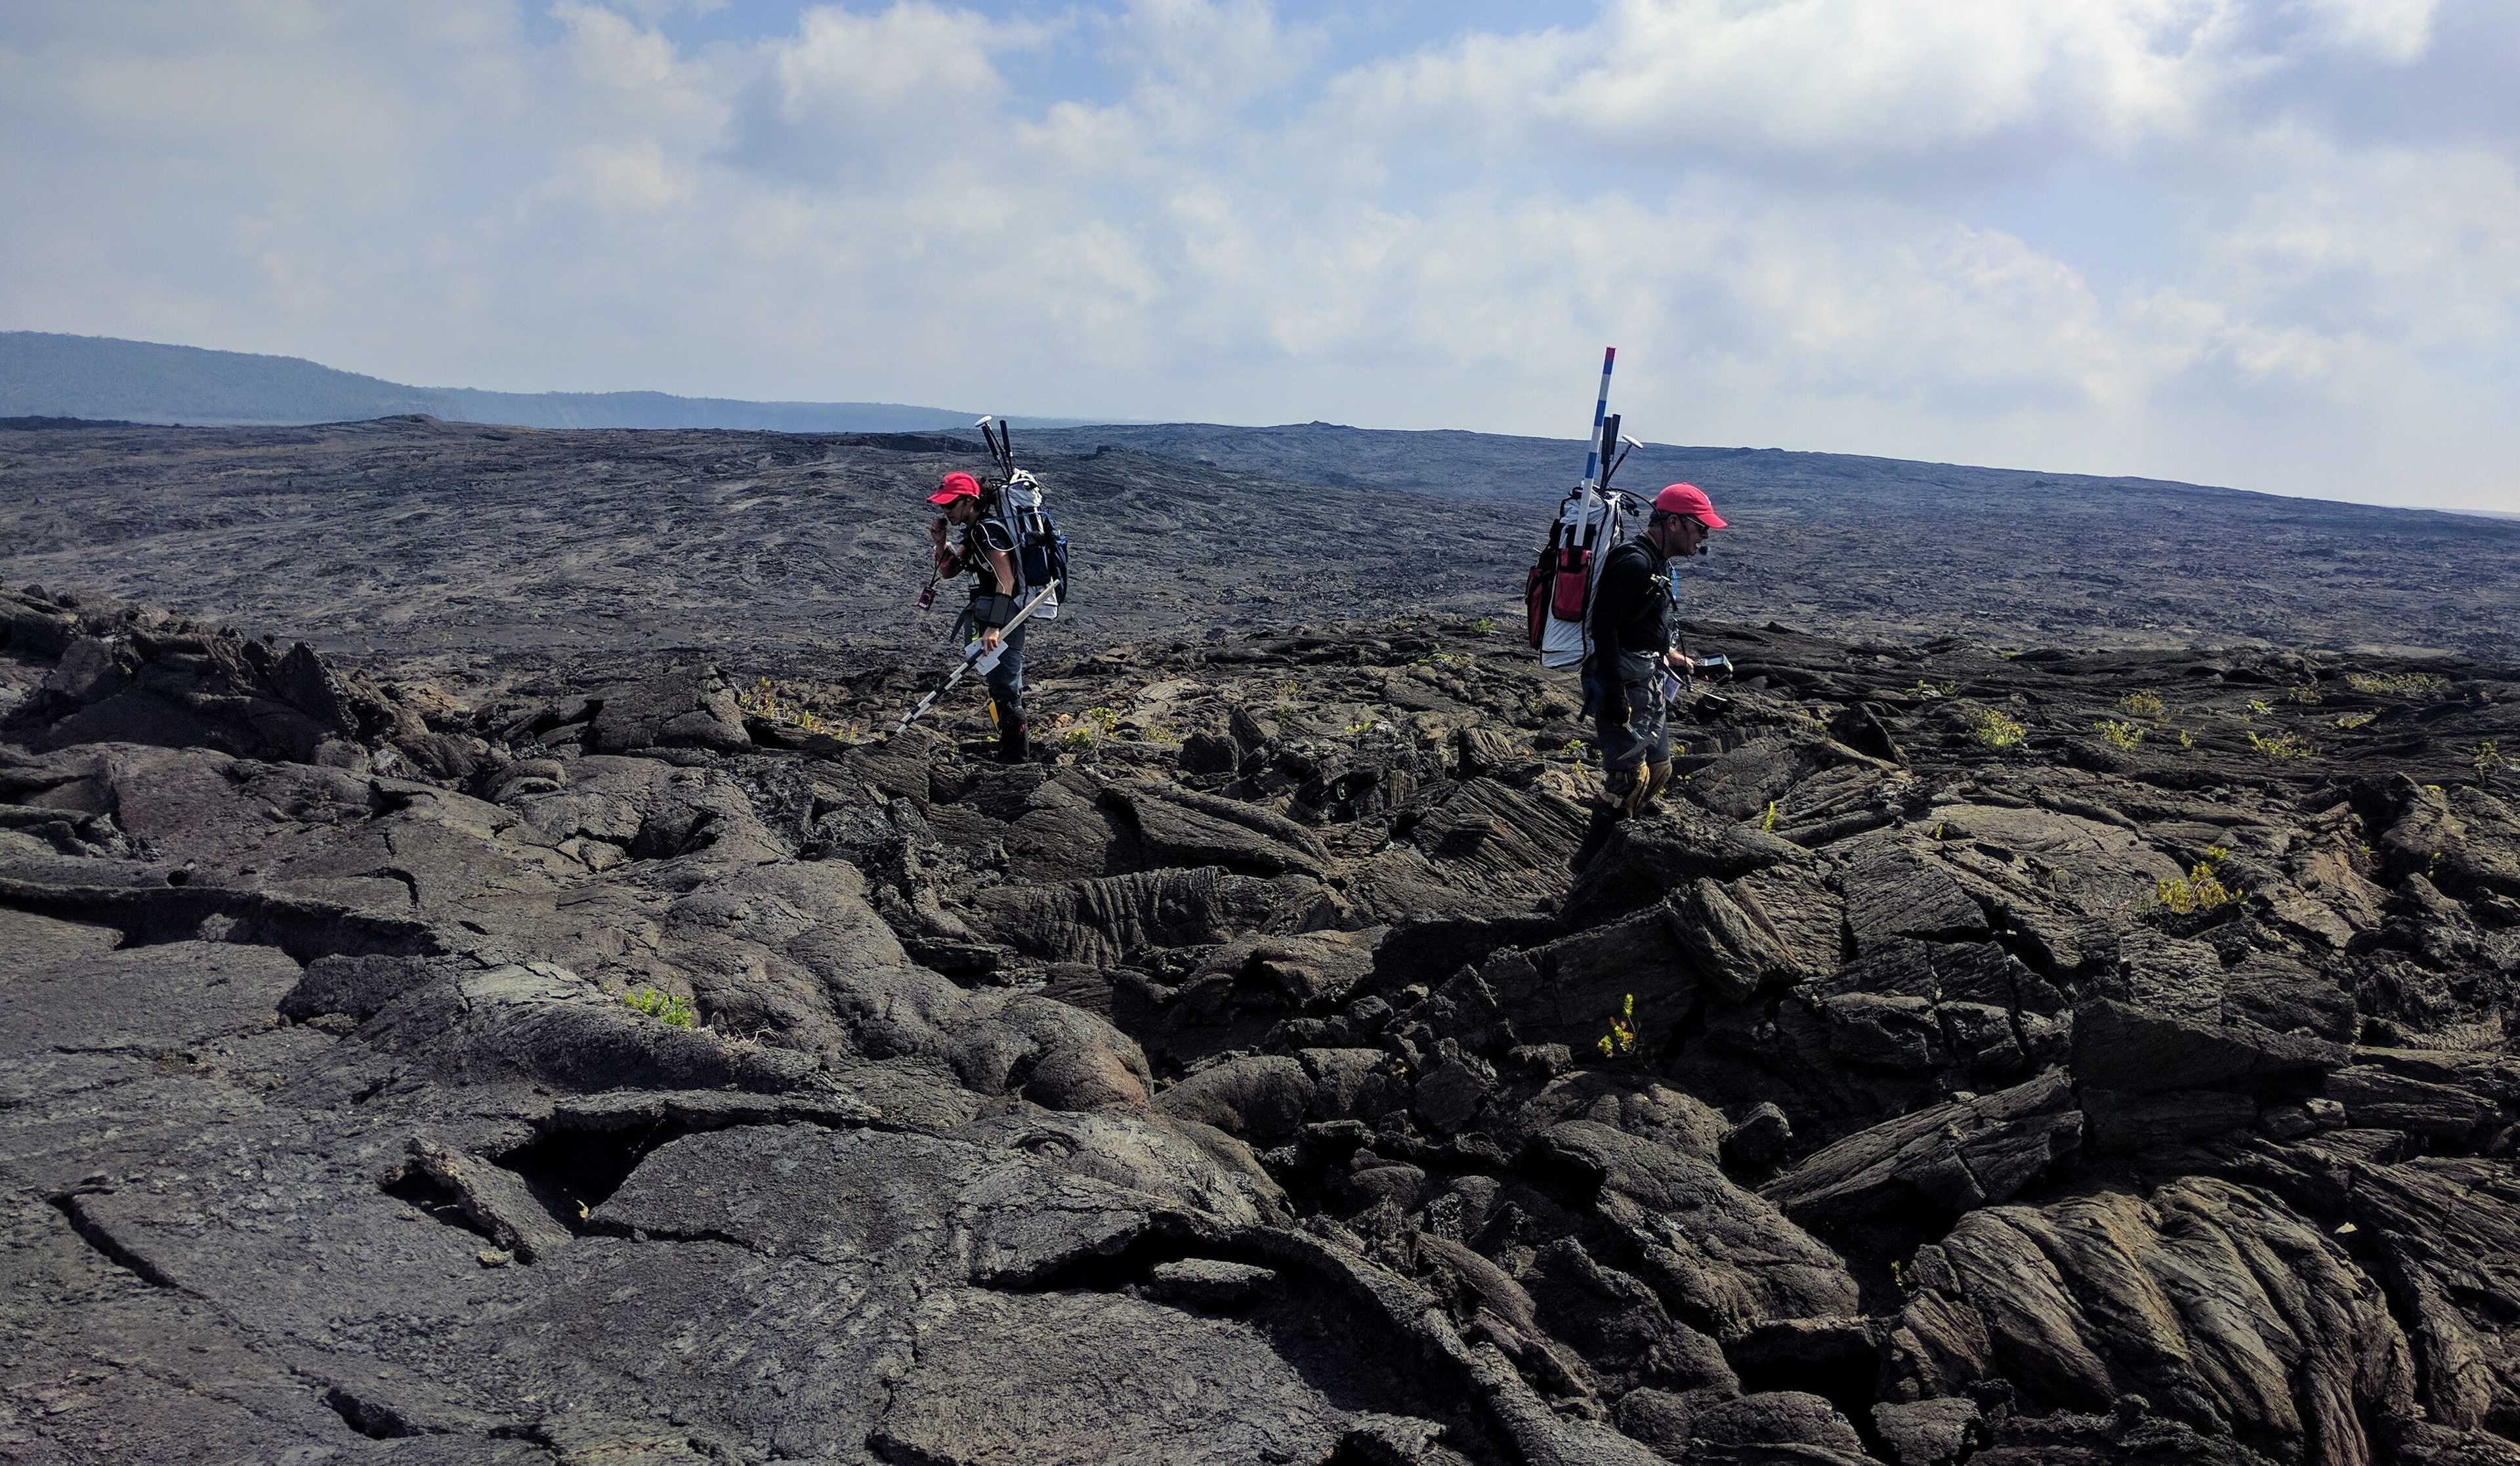 two simulated astronauts walking around on mountainous, basalt-y terrain. they have backpacks with communication equipment and appear to be surveying the surrounding area for potential sample locations